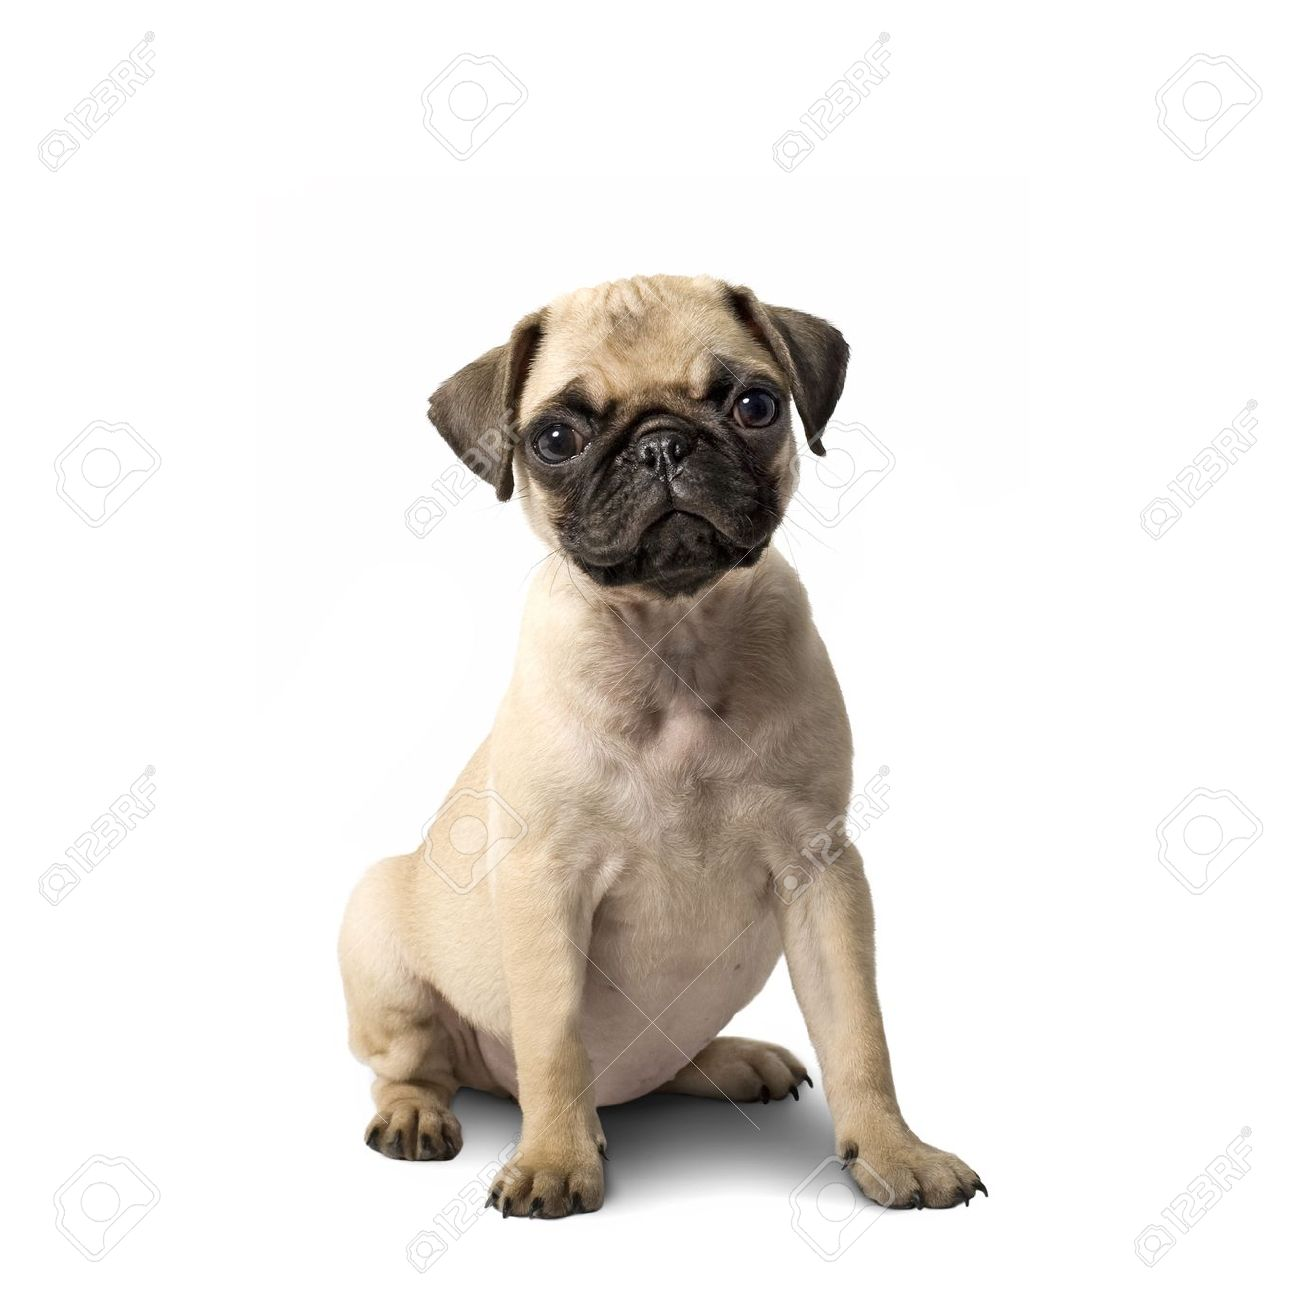 Cute Pug Puppy Isolated On White Background Stock Photo Picture And Royalty Free Image Image 8573982